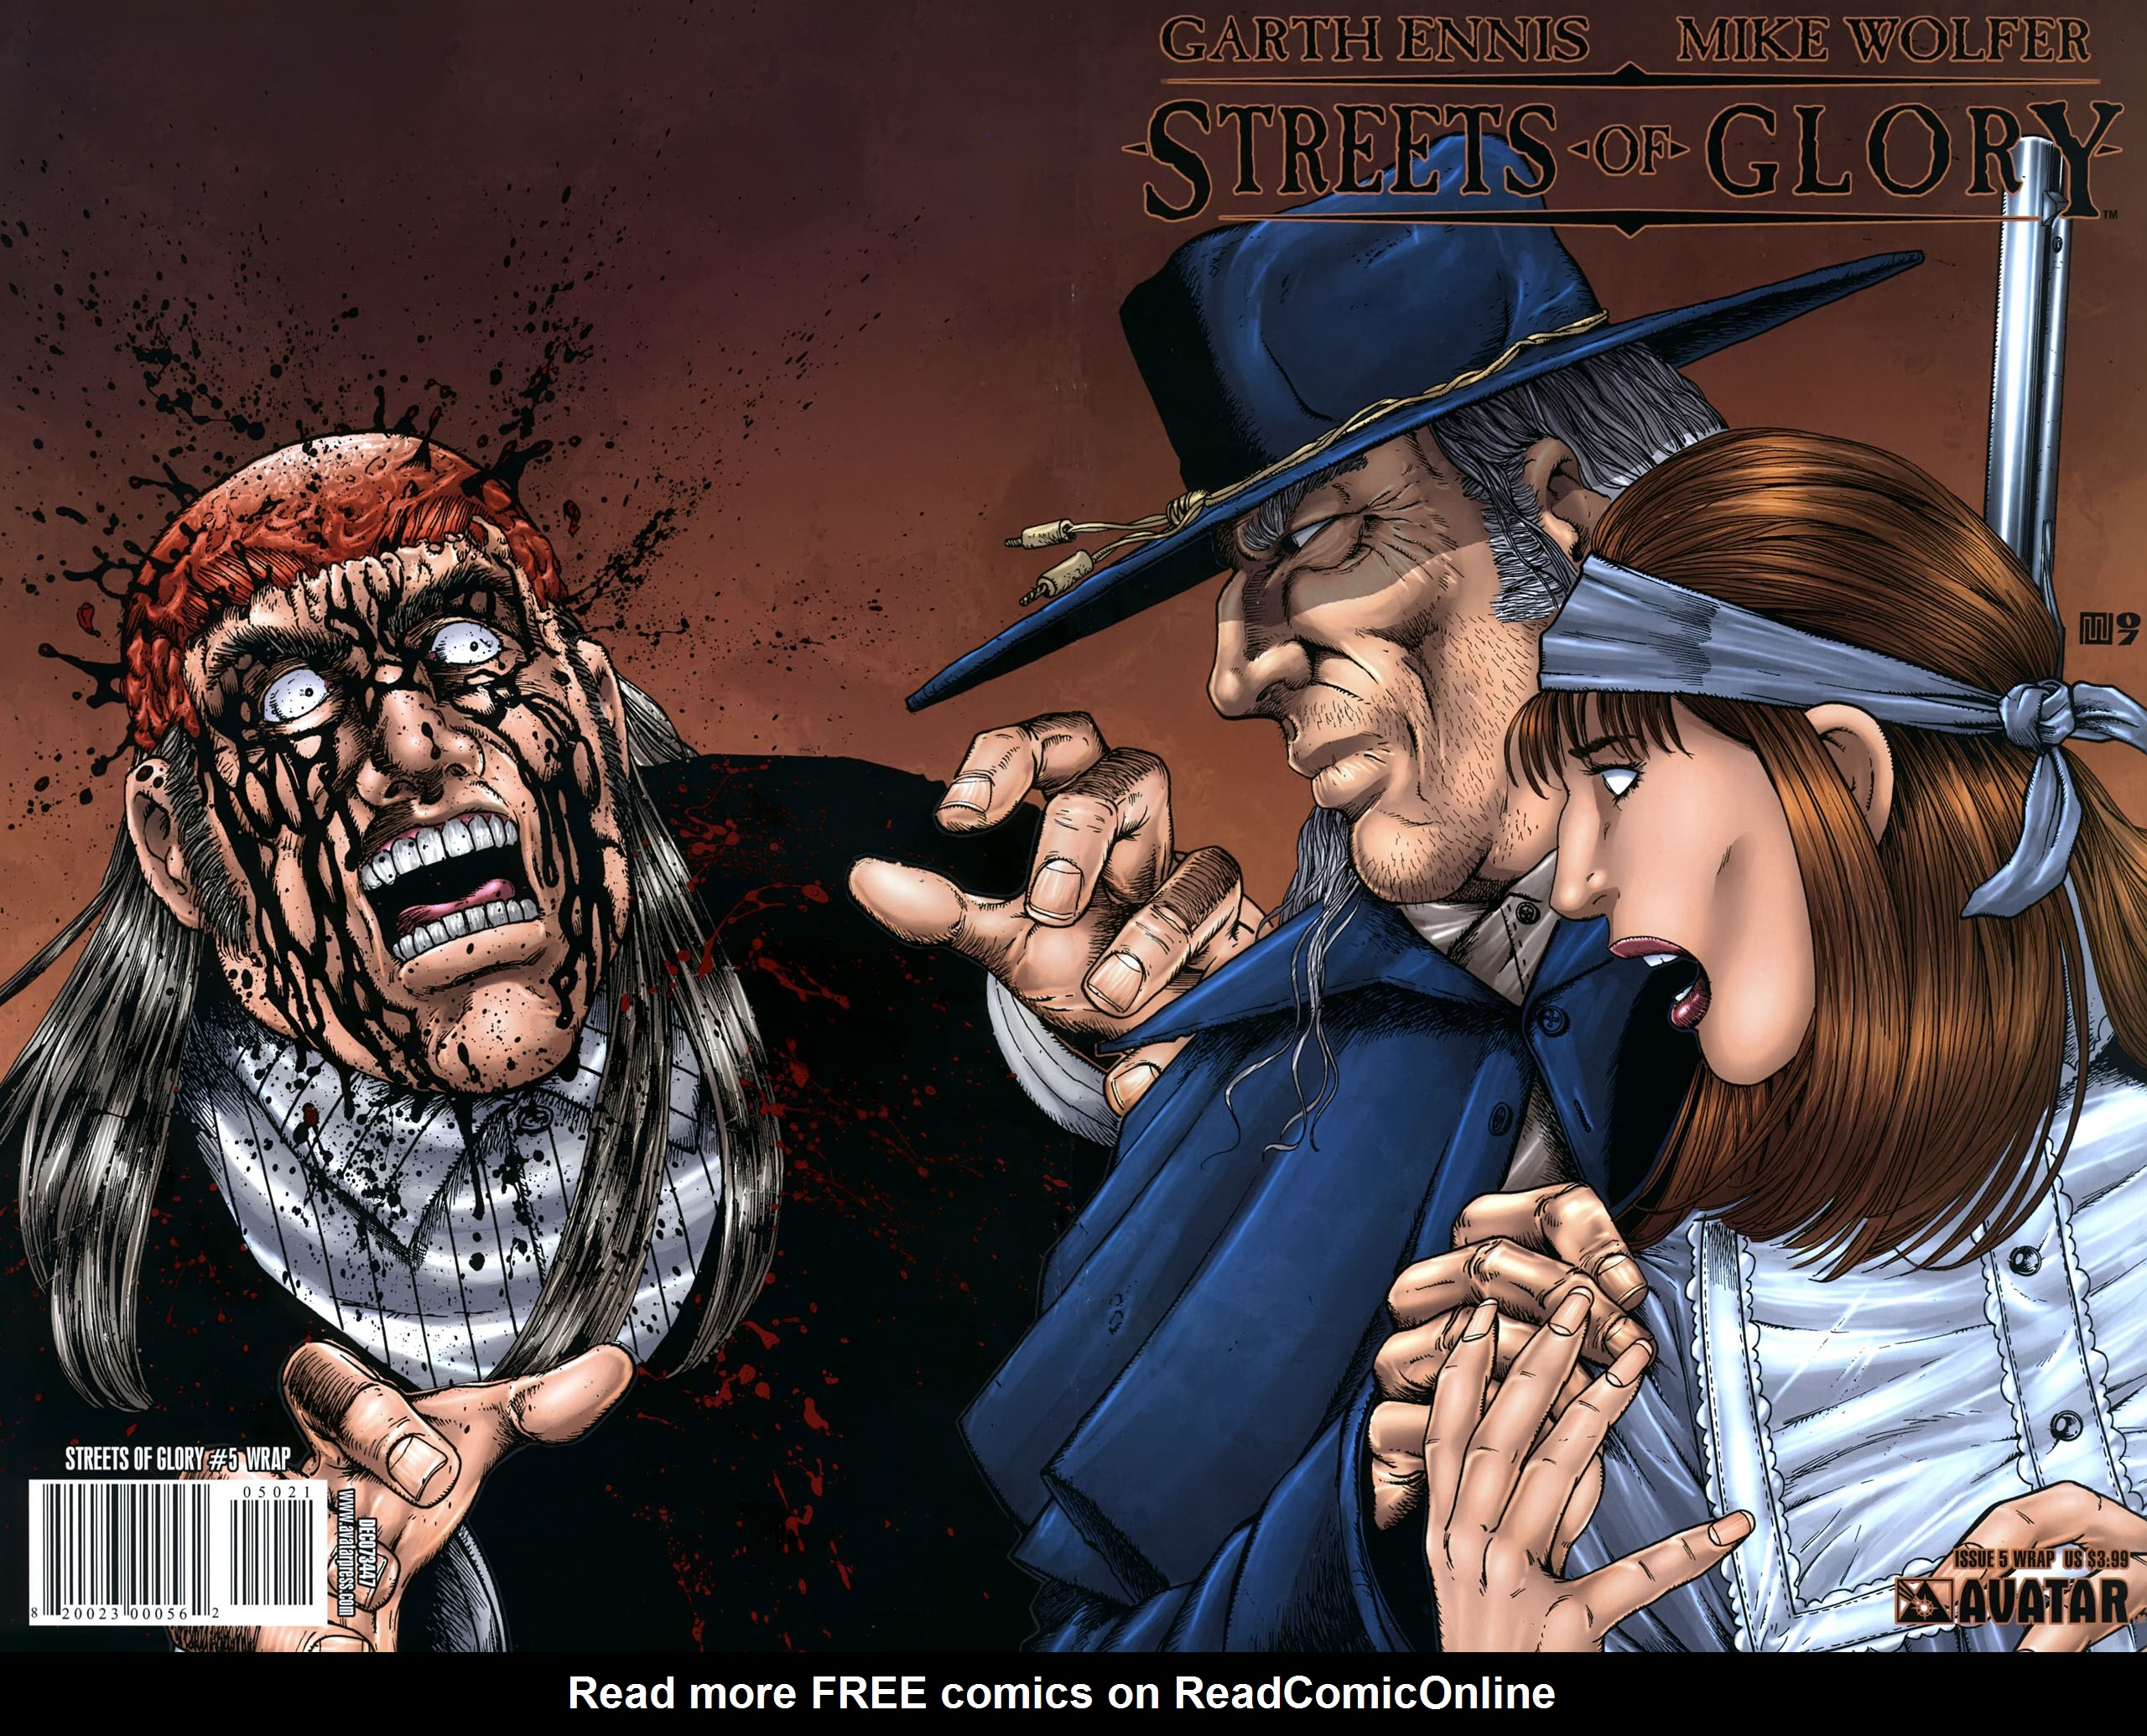 Read online Garth Ennis' Streets of Glory comic -  Issue #5 - 1